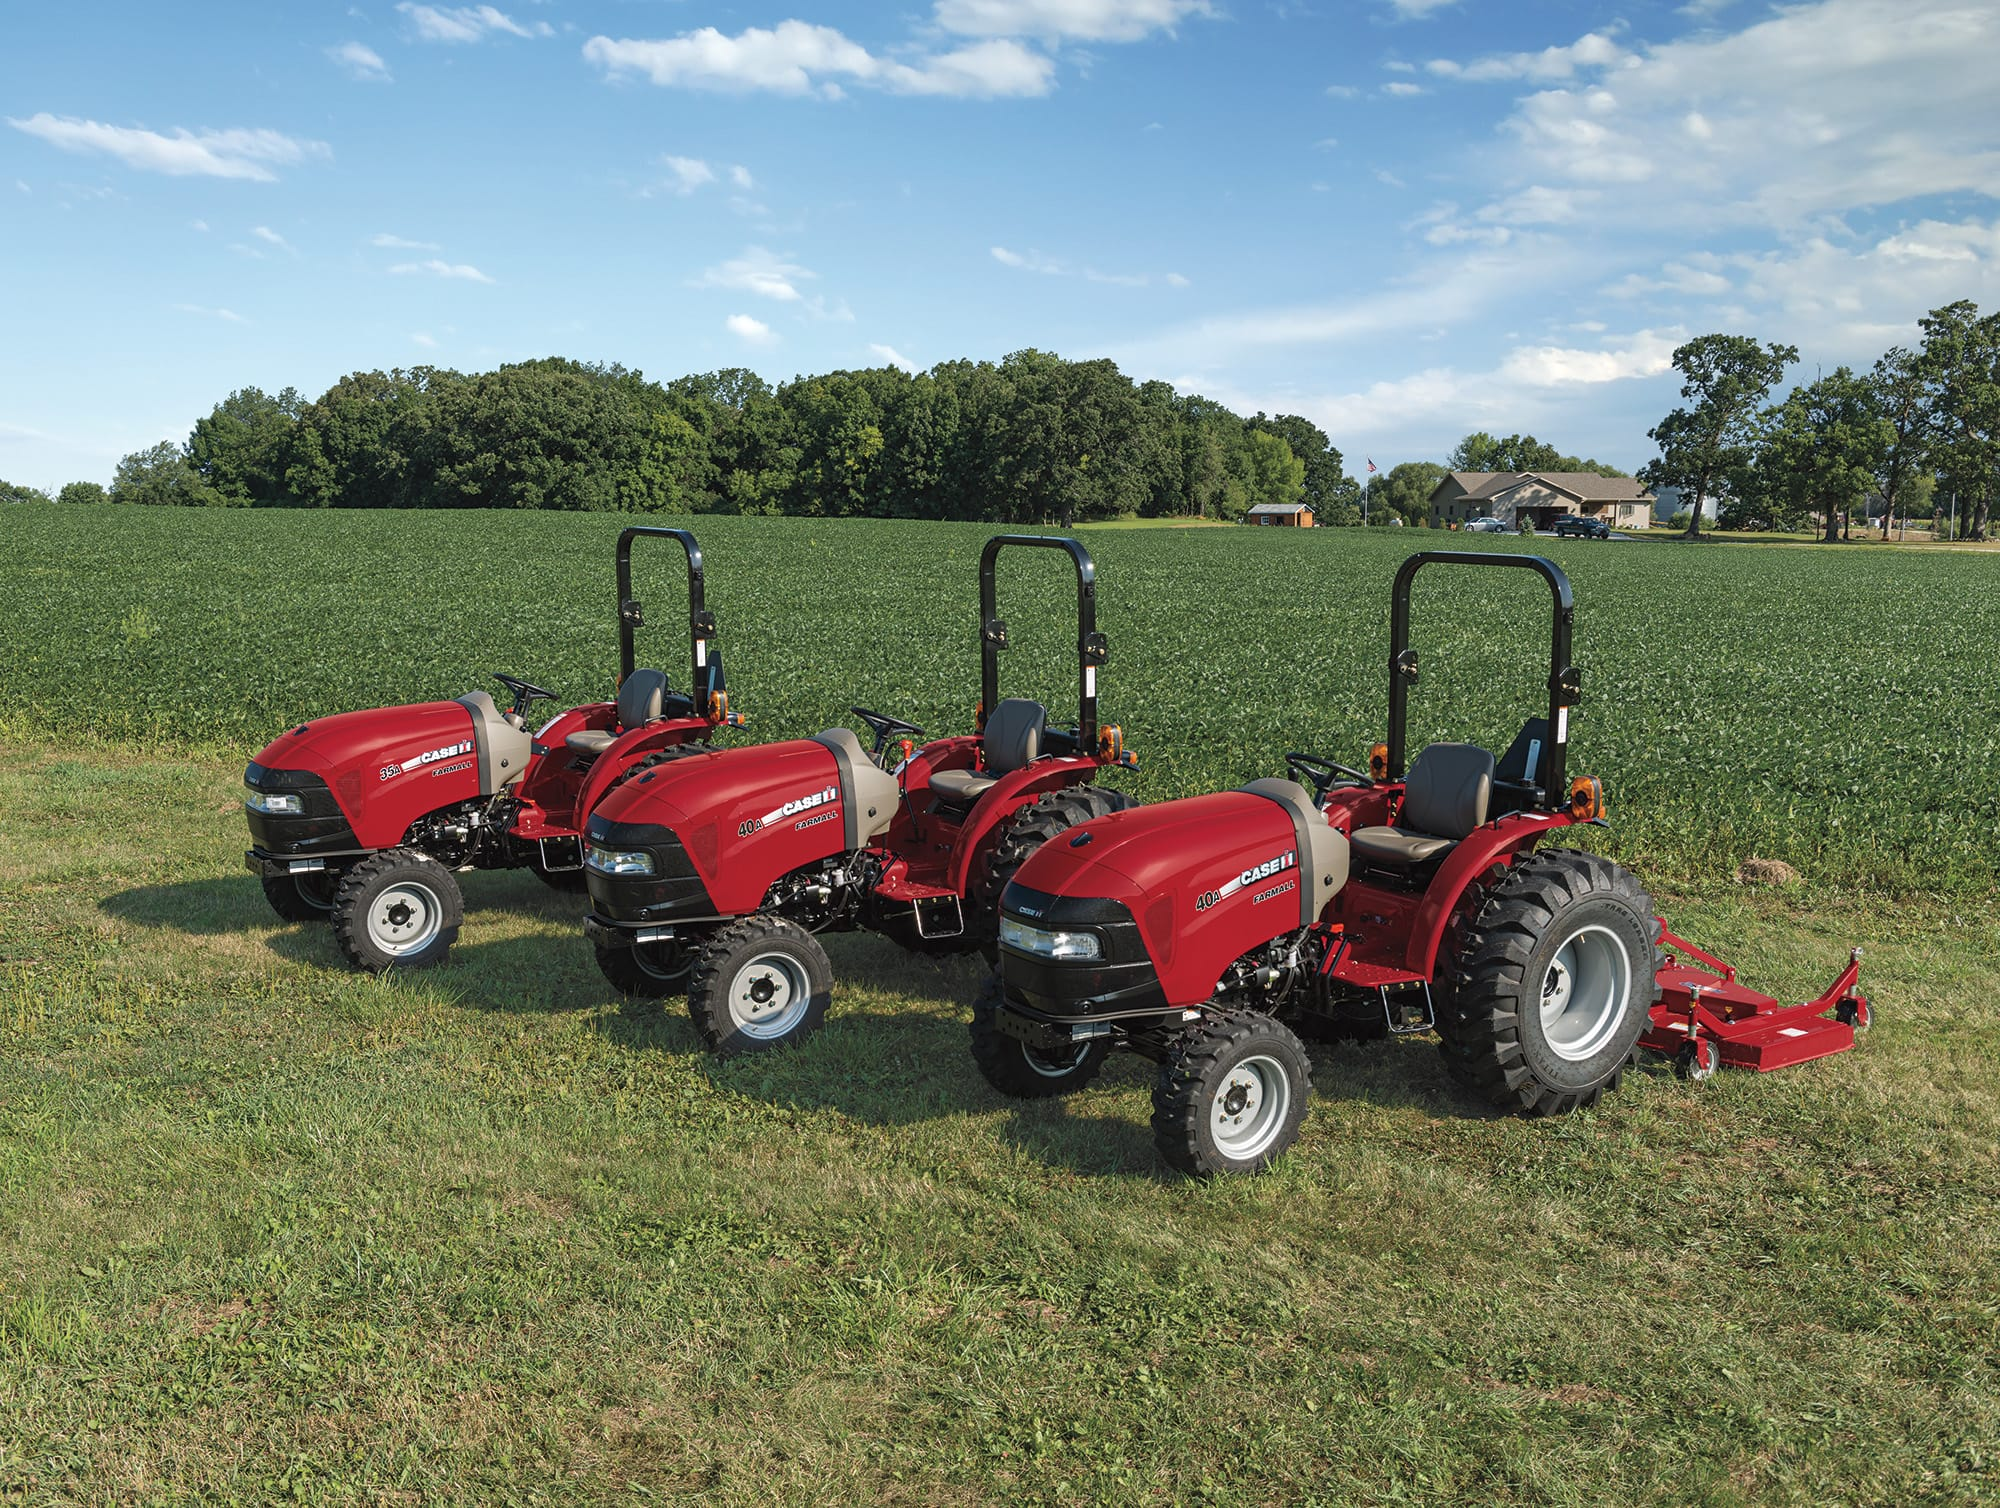 Get Back to Basics with a Reliable, Simple, and Versatile Tractor.